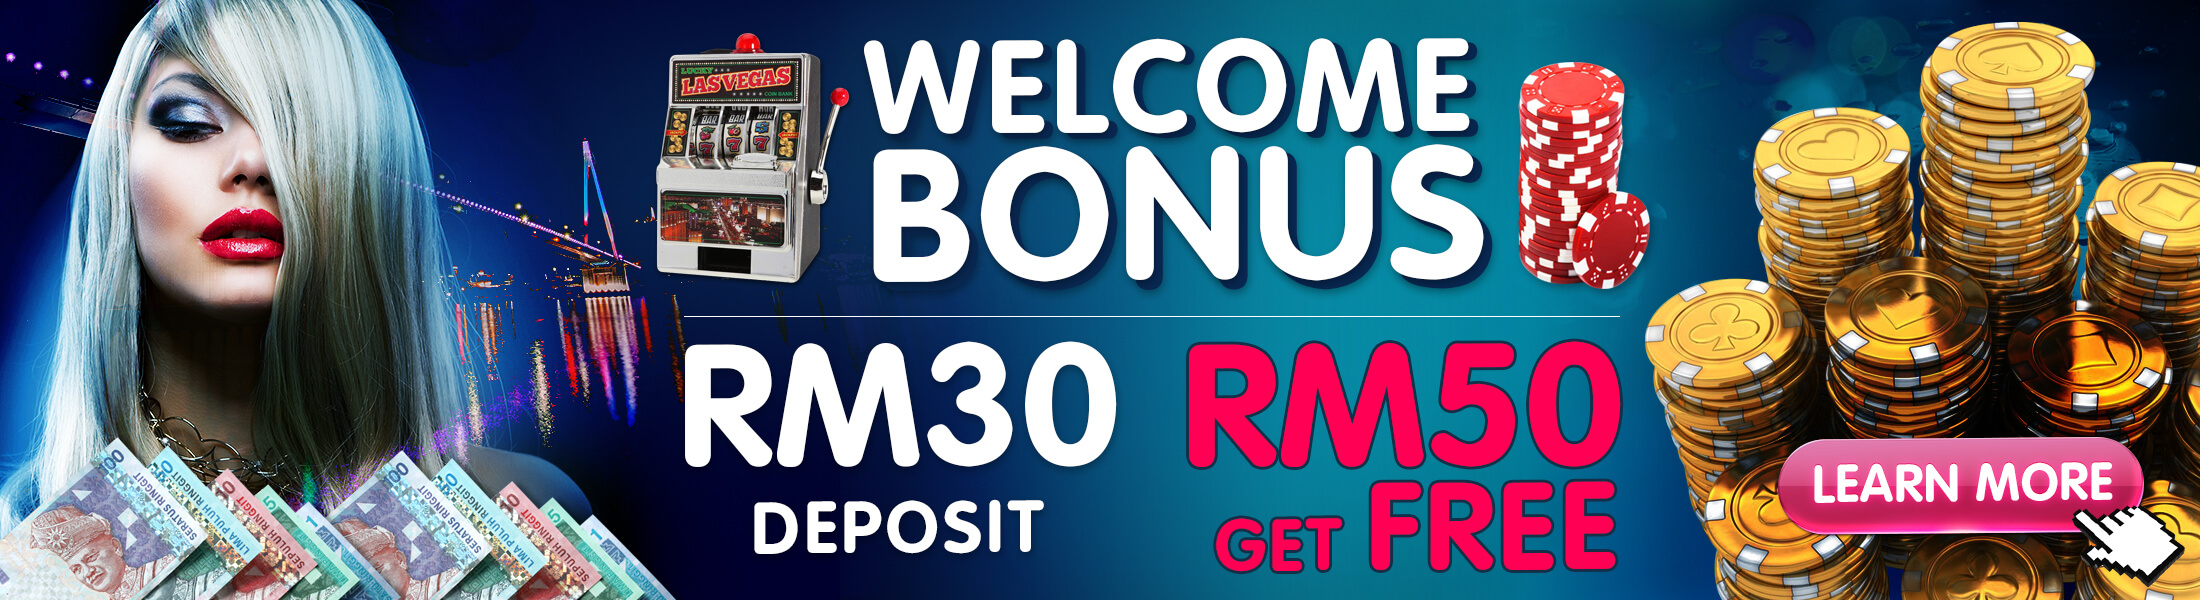 promotions welcome bonus match first time deposit terms conditions